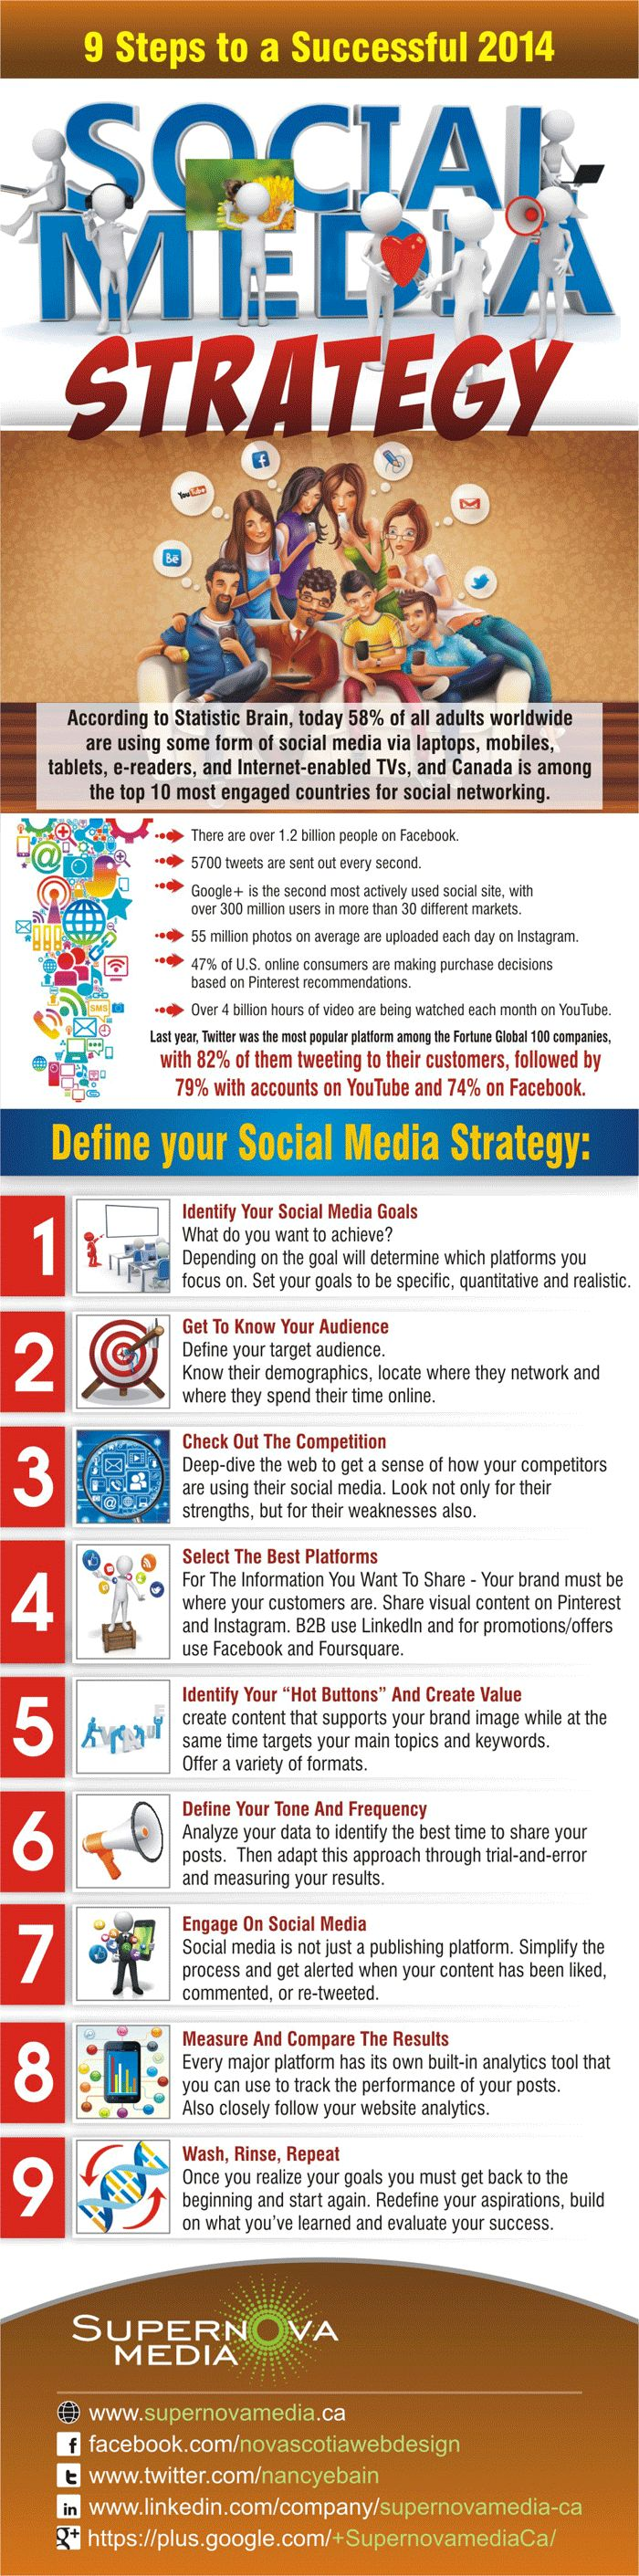 9 Steps To A Successful 2014 - Social Media Strategy #infographic